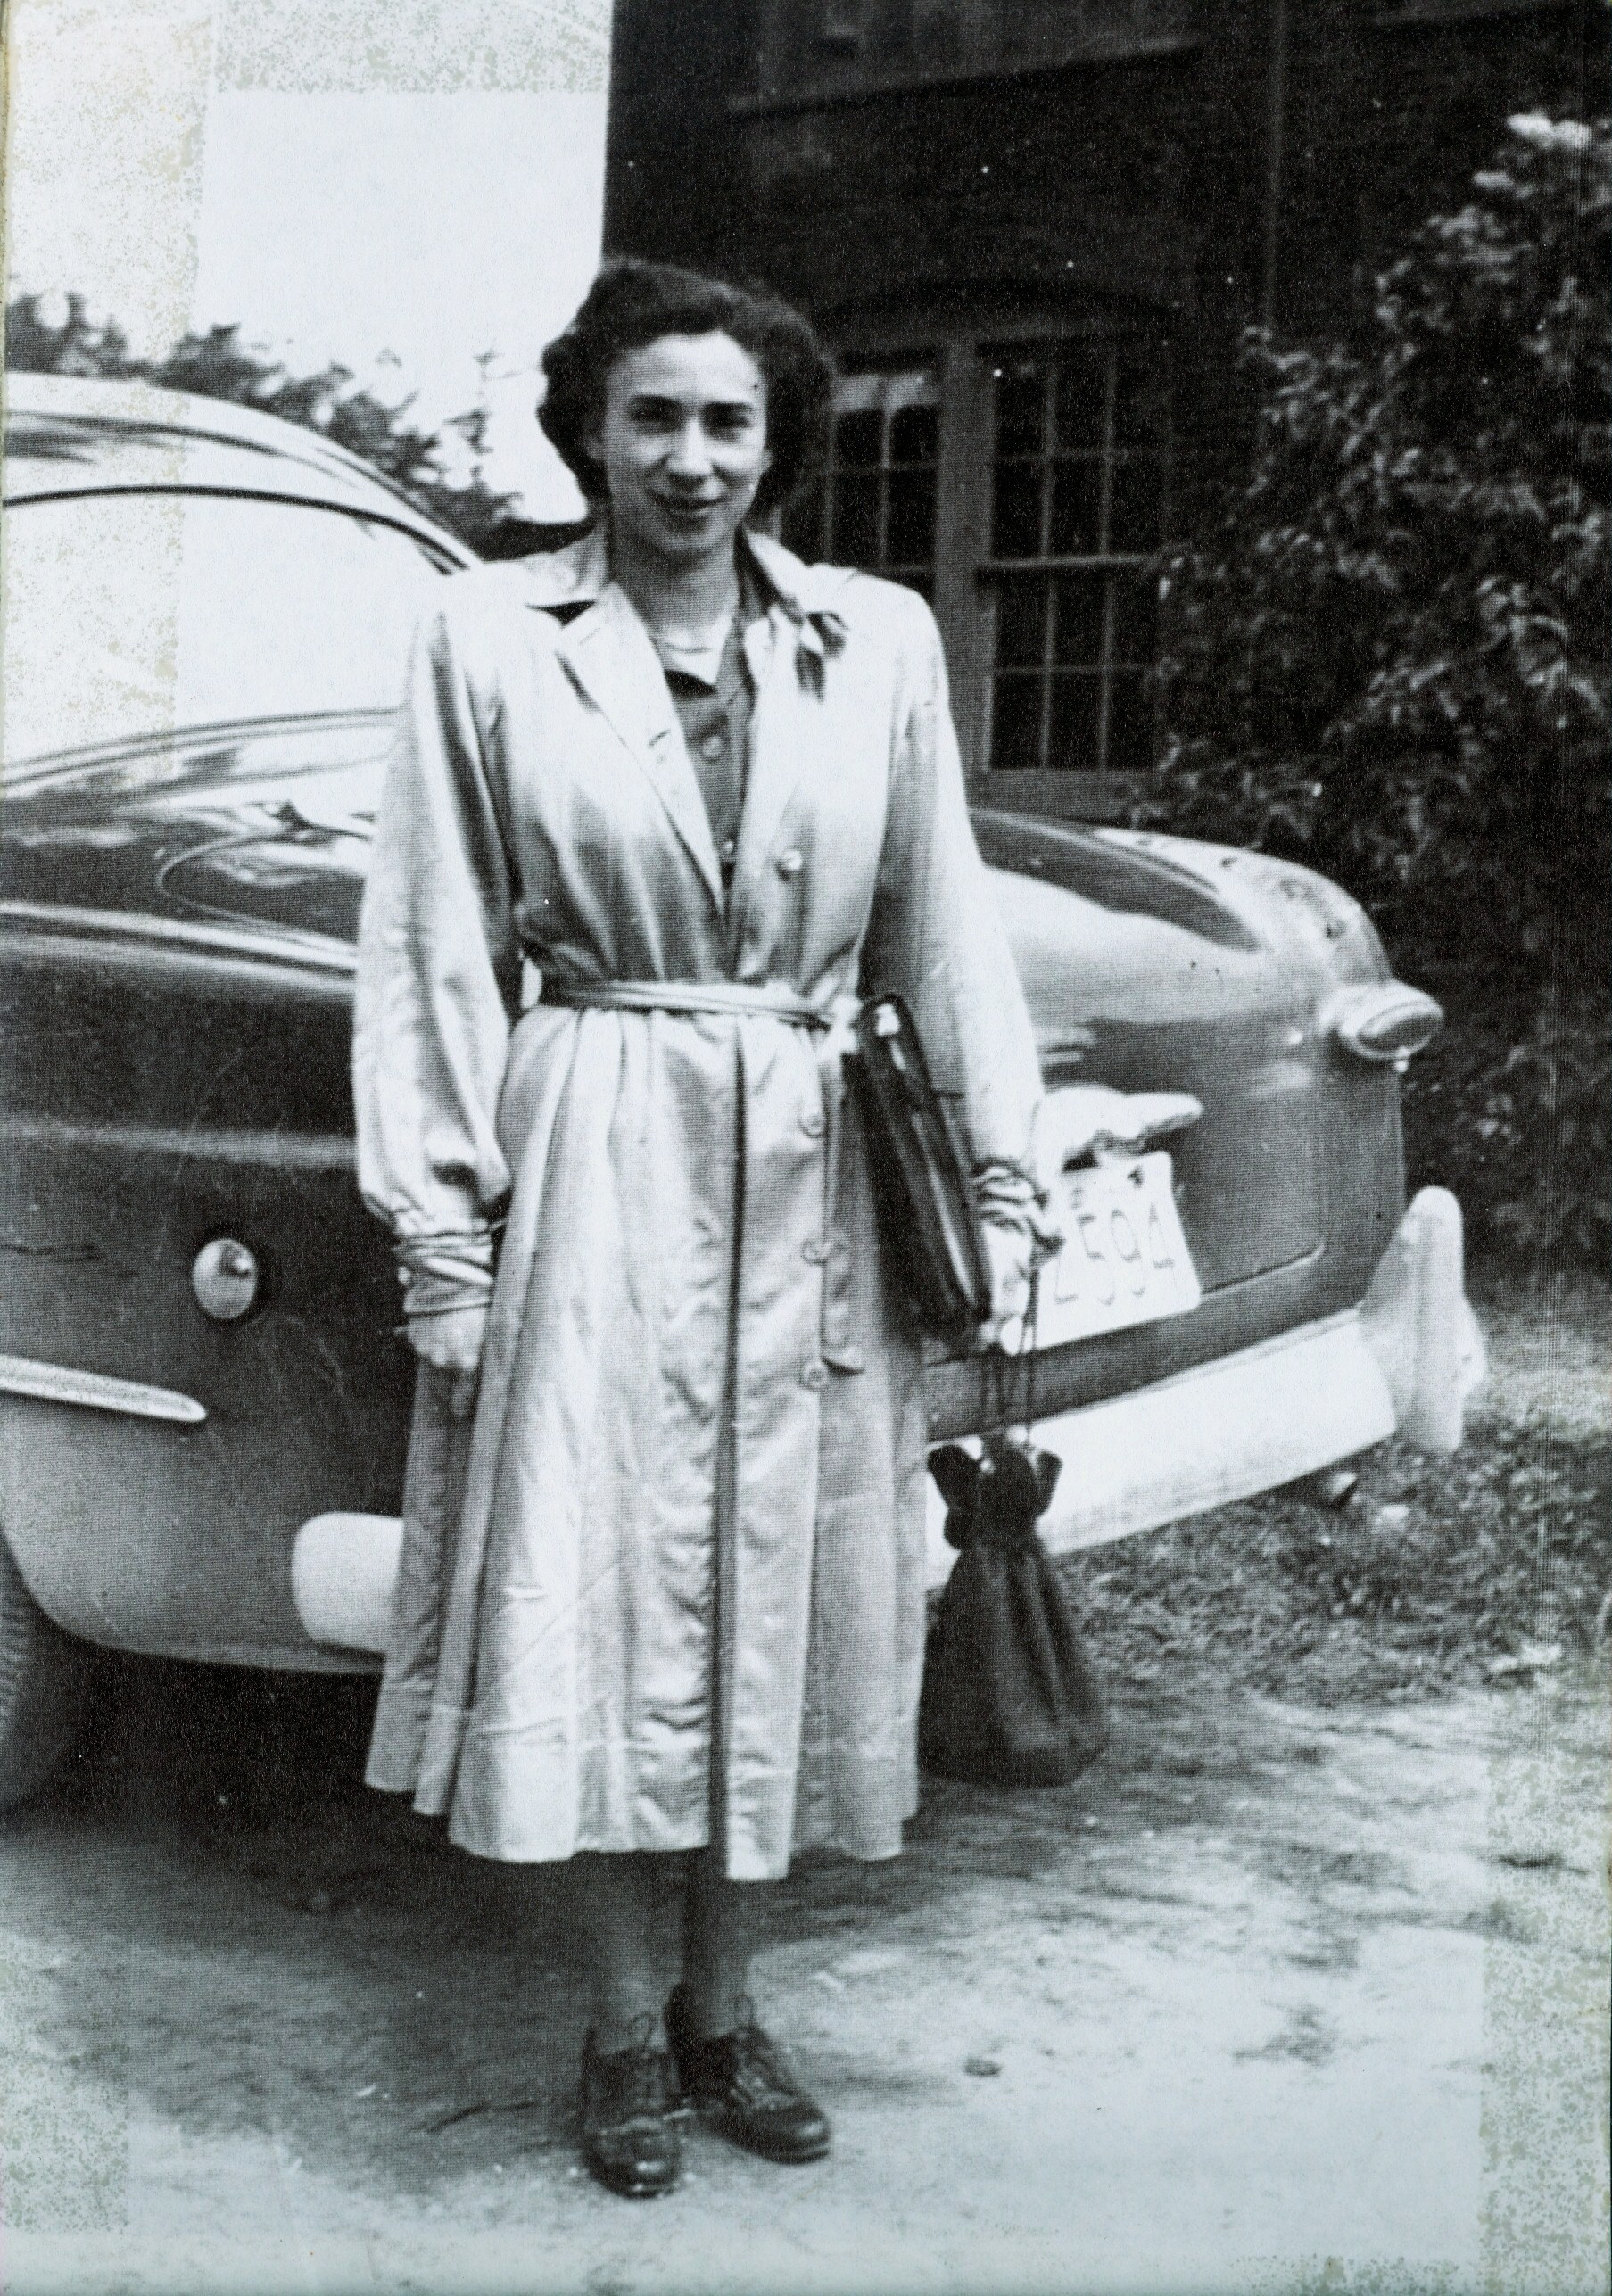 Jean Workman teacher in 1950 s